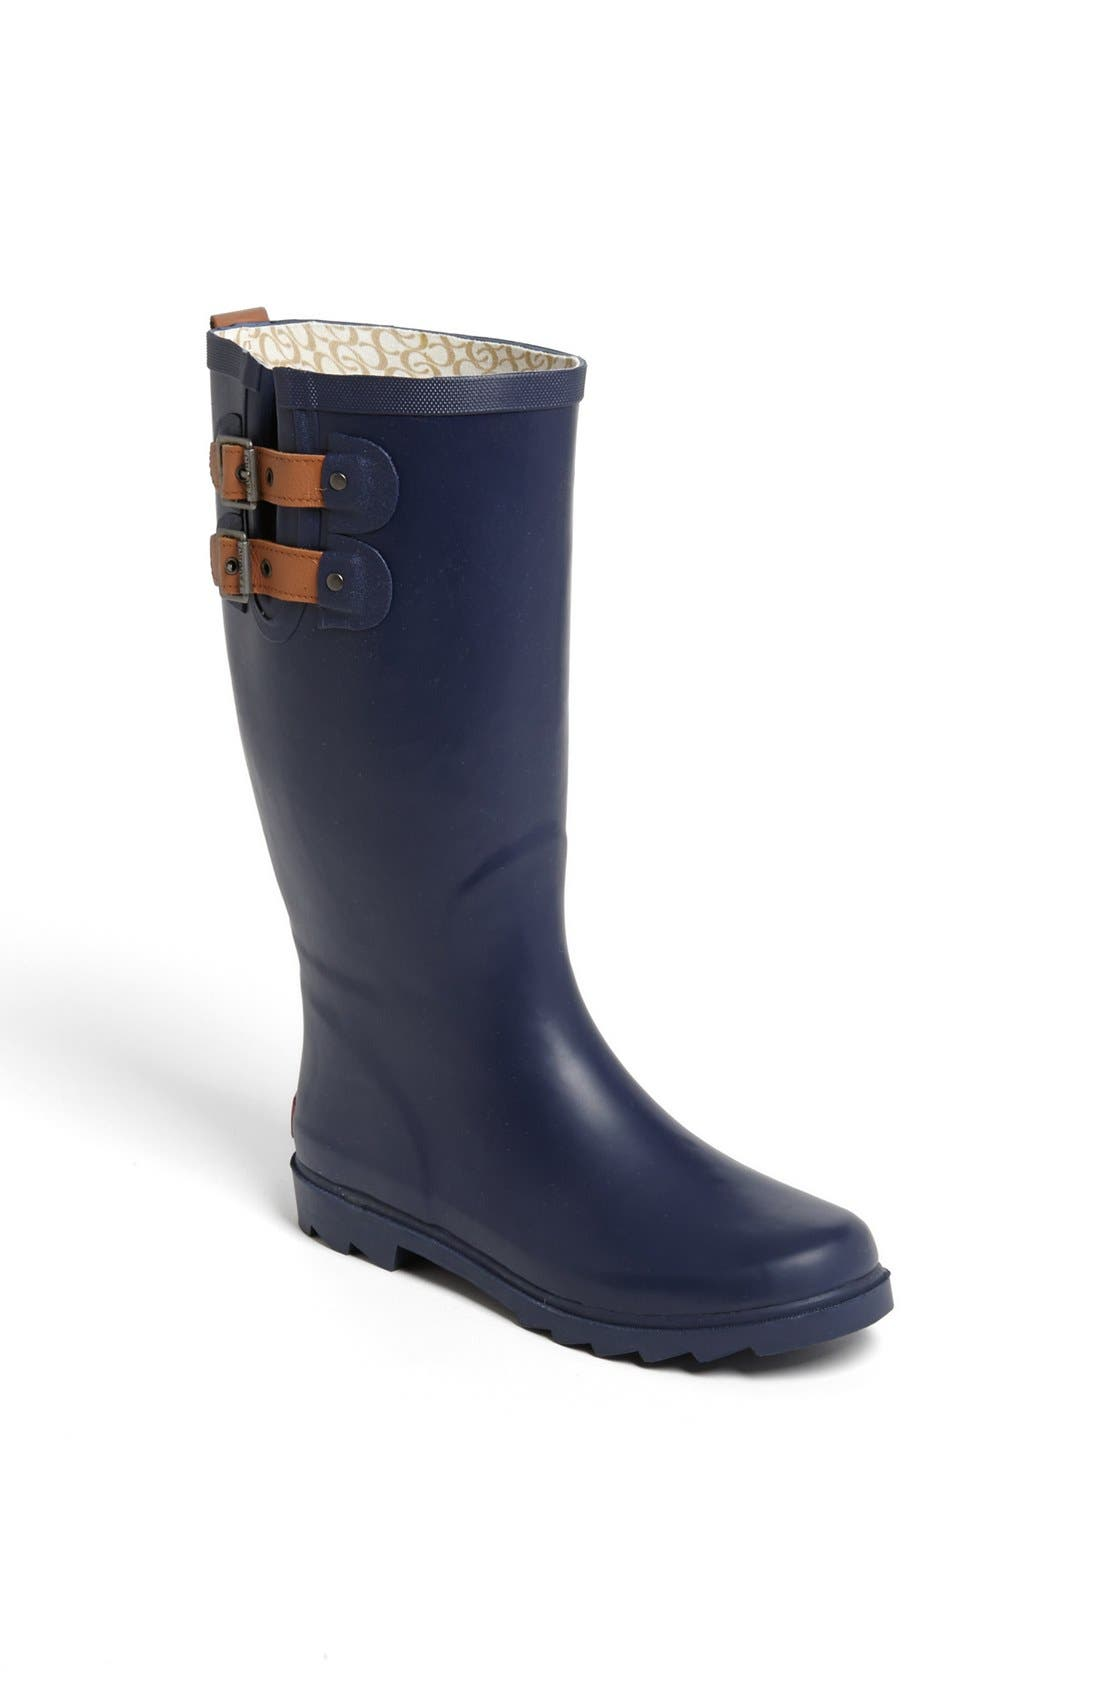 Alternate Image 1 Selected - Chooka 'Top Solid' Rain Boot (Women) (Online Exclusive Color)